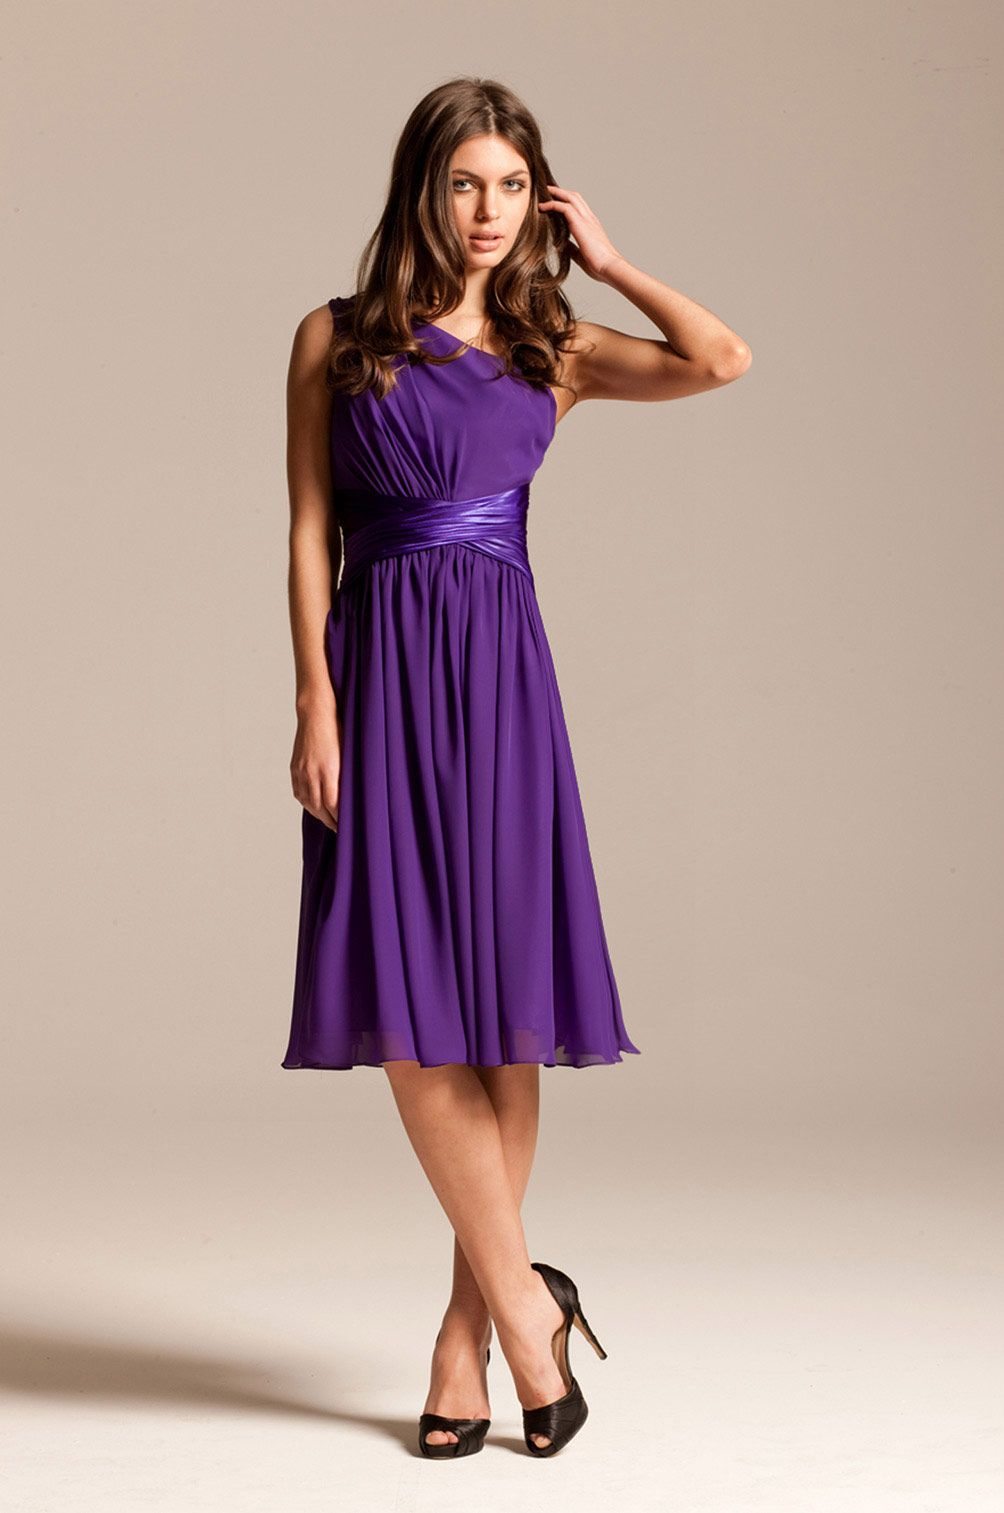 Purple-One-Shoulder-Cocktail-Dress- | My STYLE | Pinterest ...